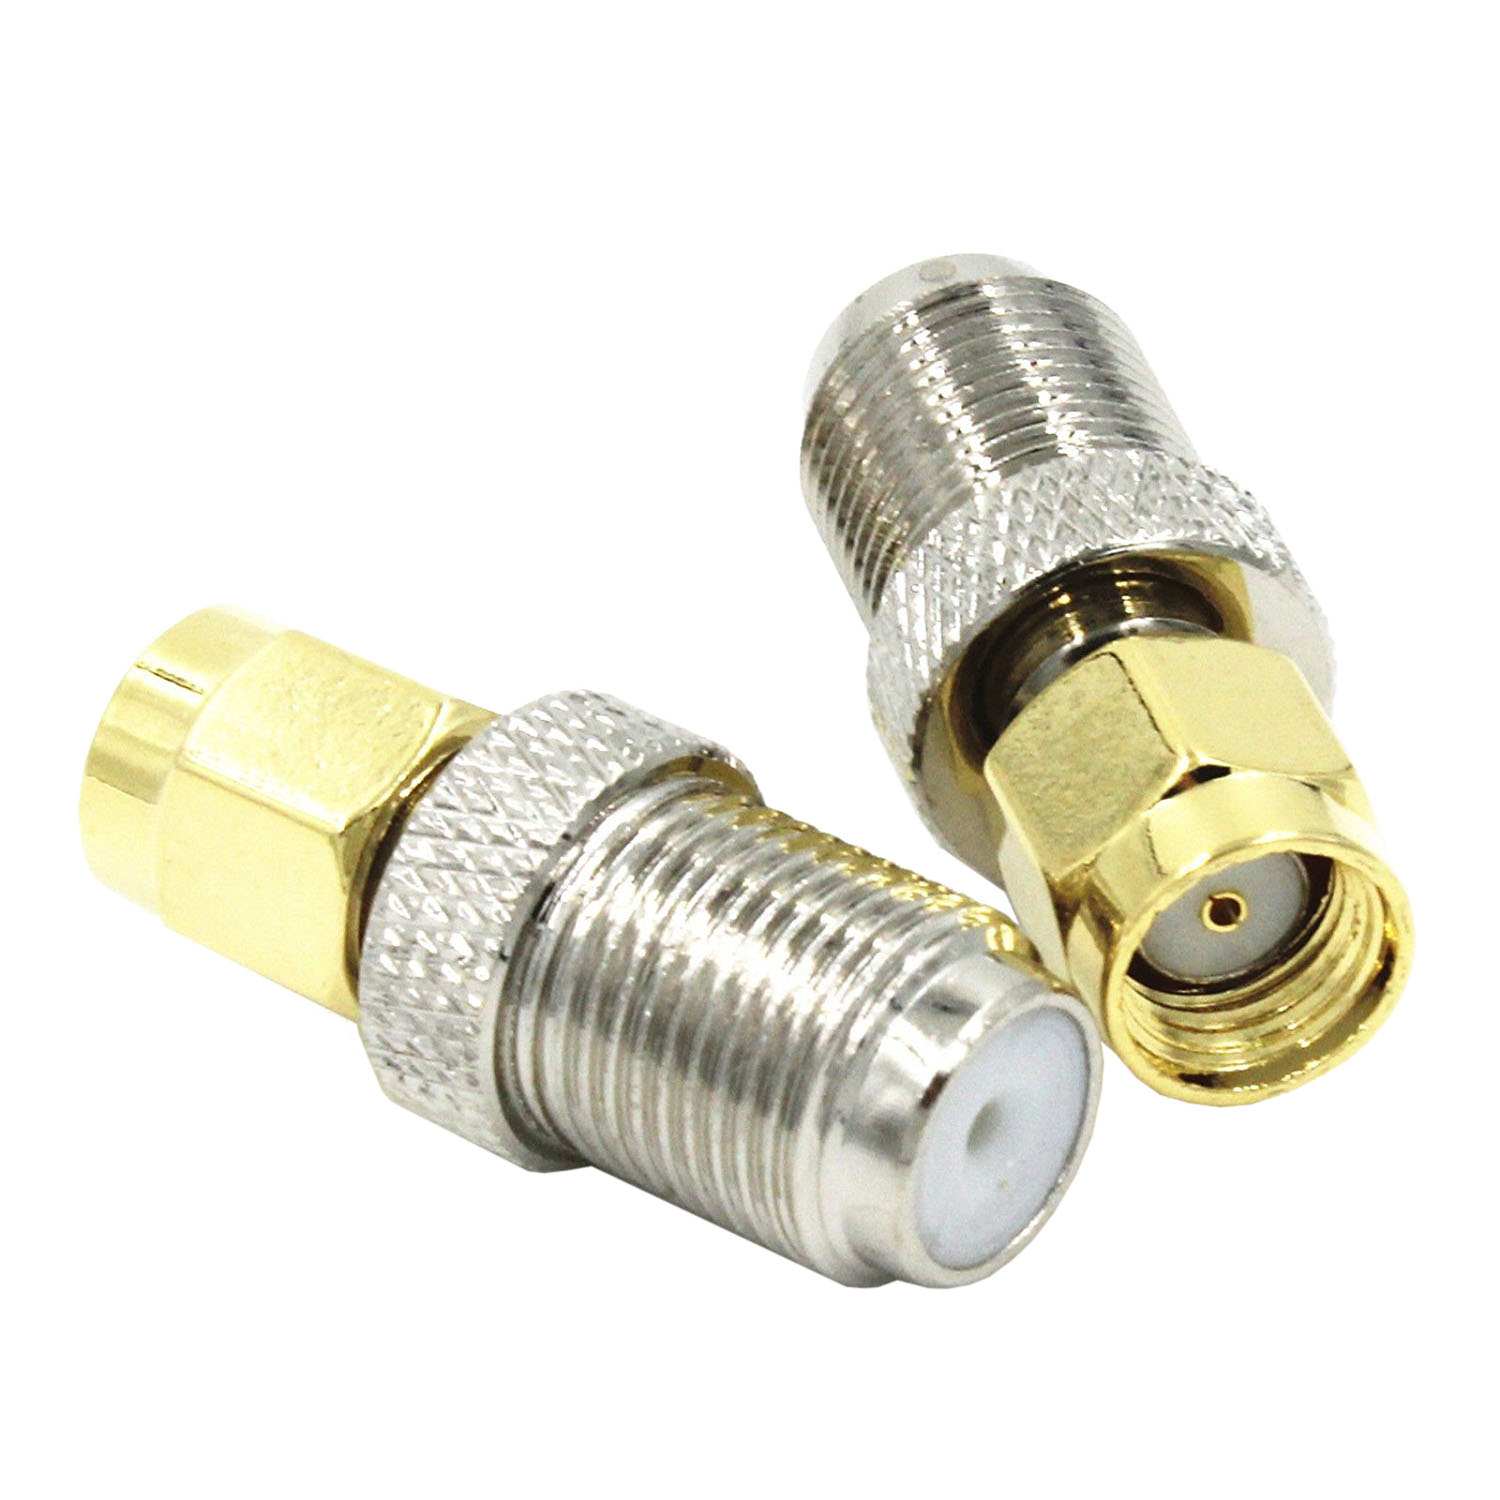 RF coaxial coax adapter RP-SMA male to F female